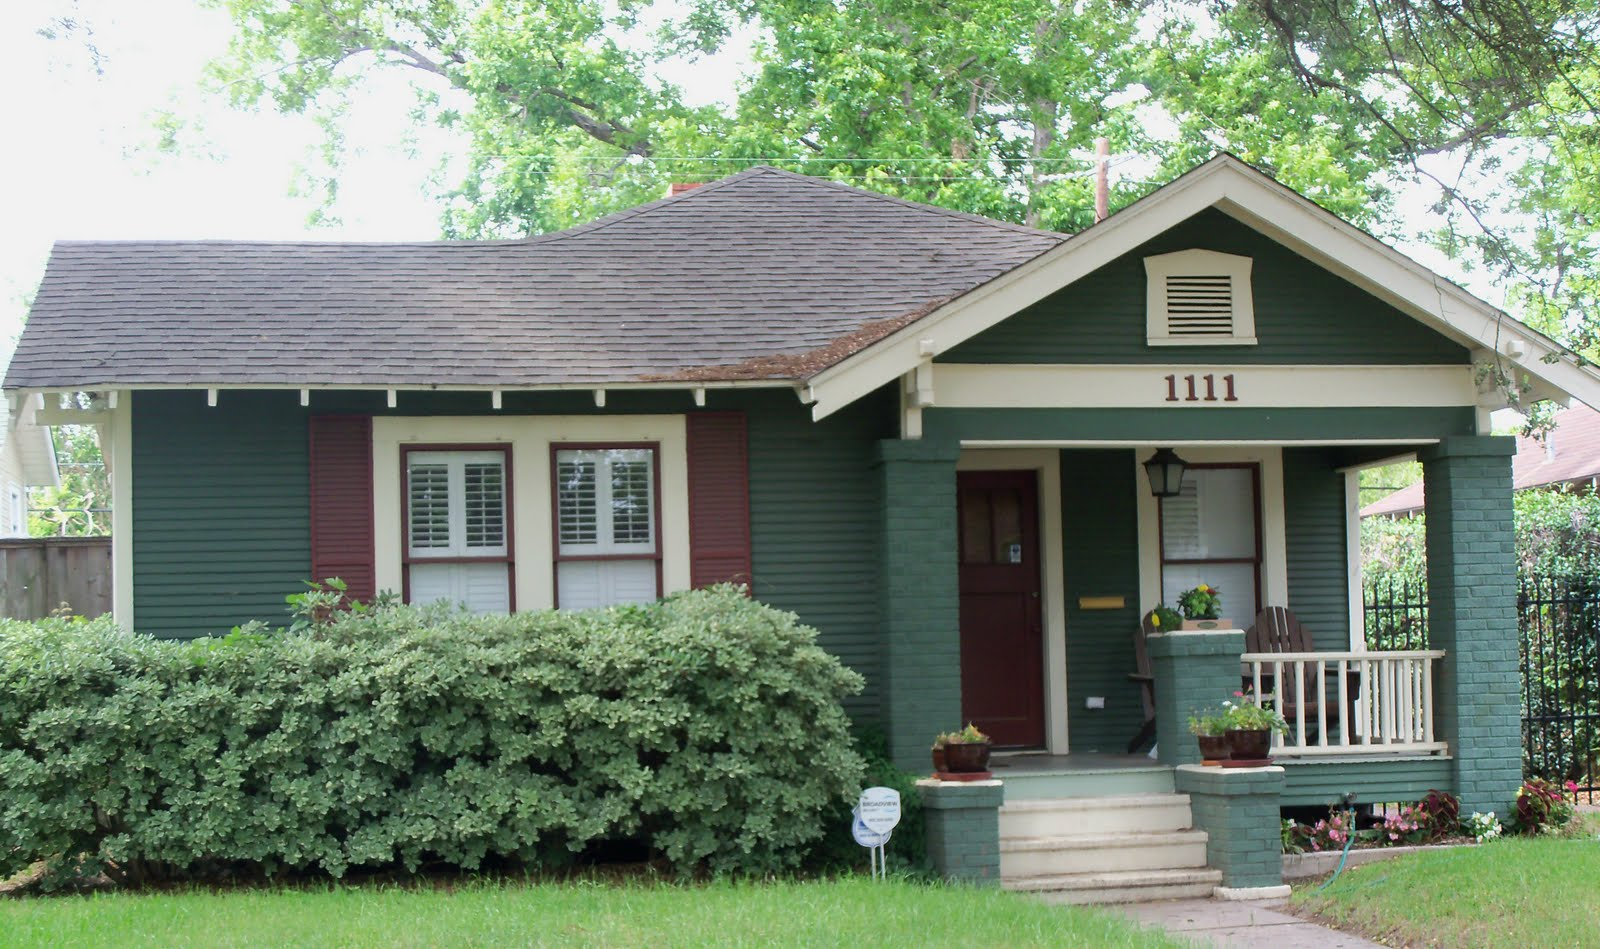 Green Colored Houses - Architectural Designs